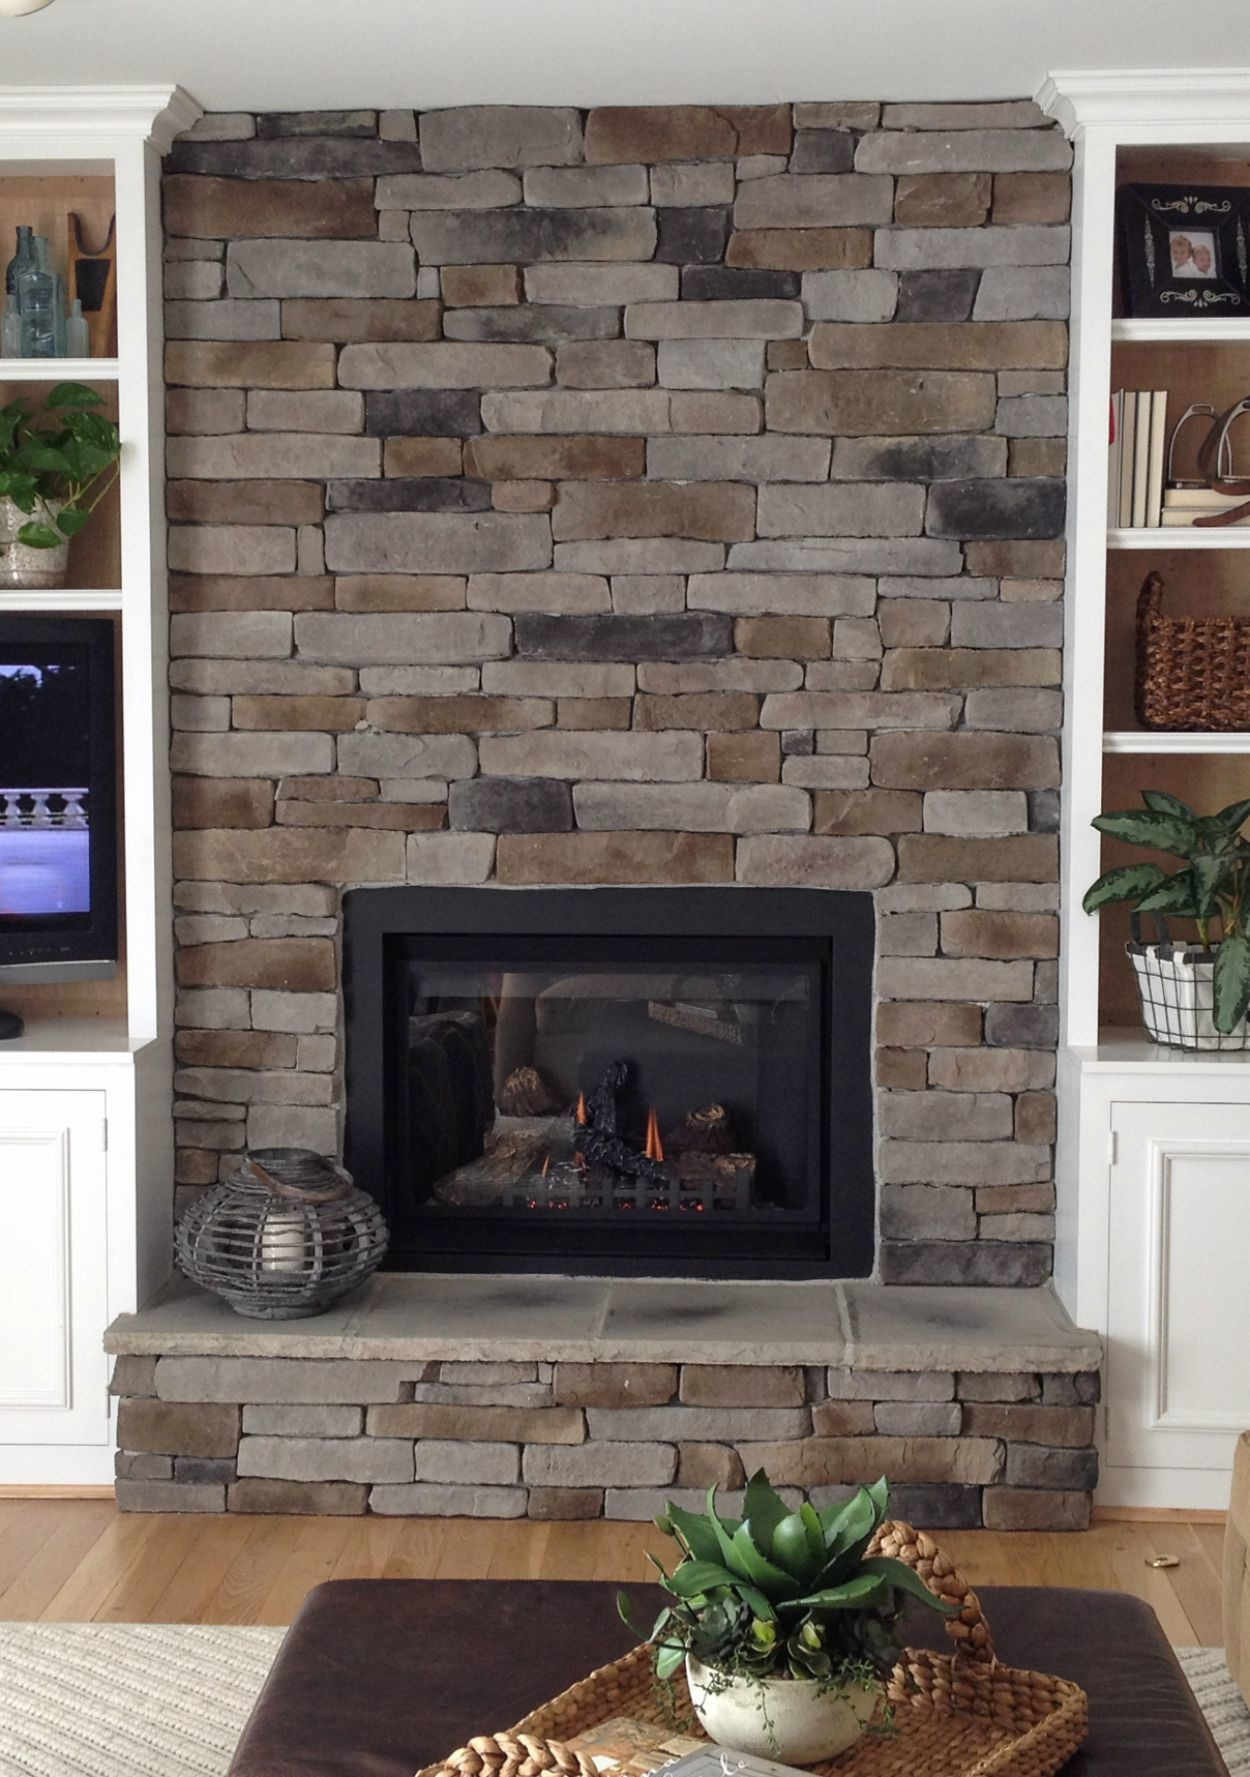 Fireplace Stone How To Create The Stacked Stone Fireplace Look On A Budget